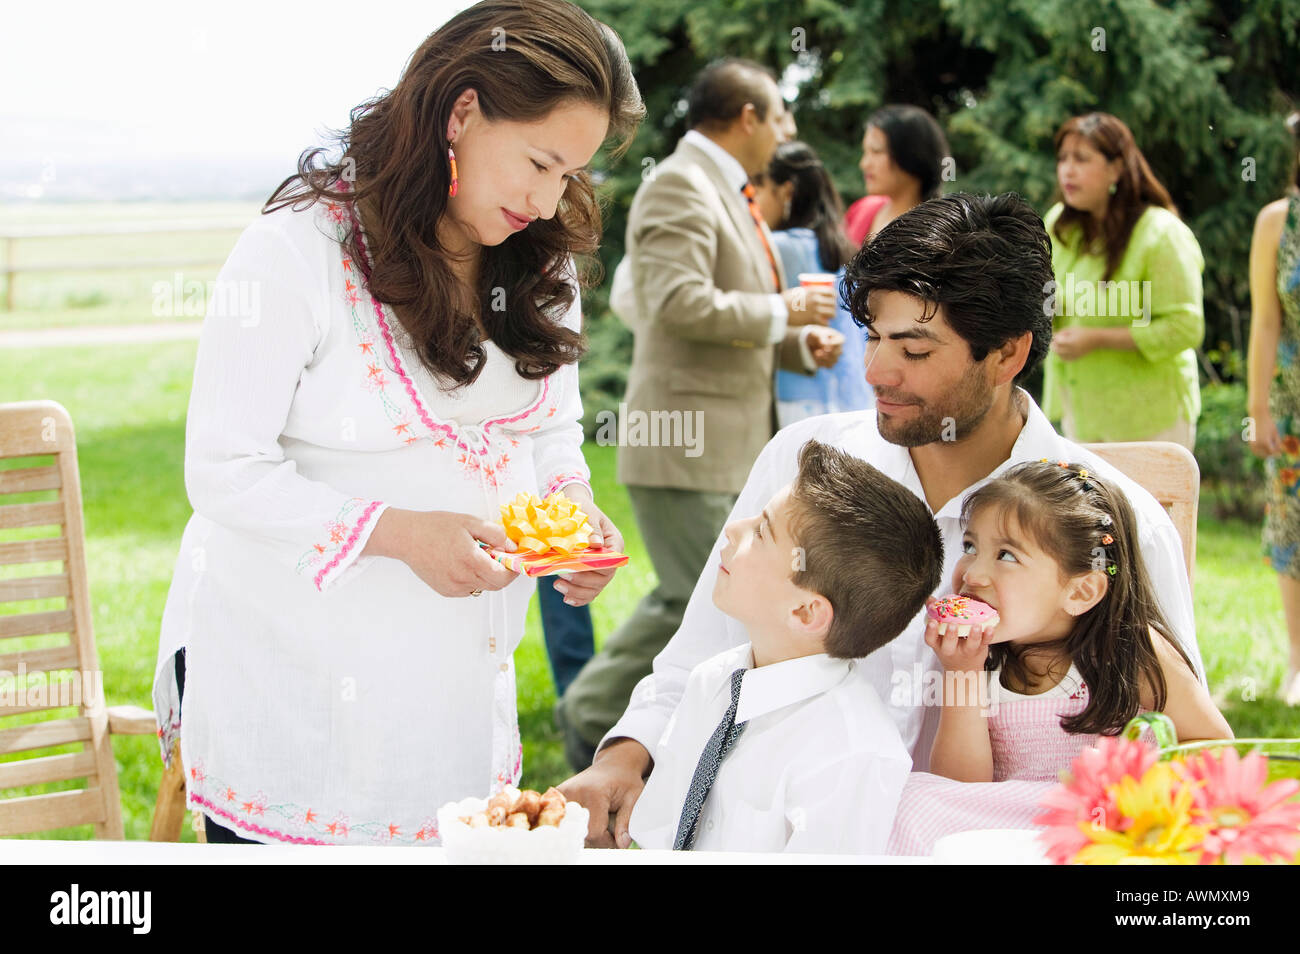 Hispanic mother handing birthday gift to son - Stock Image